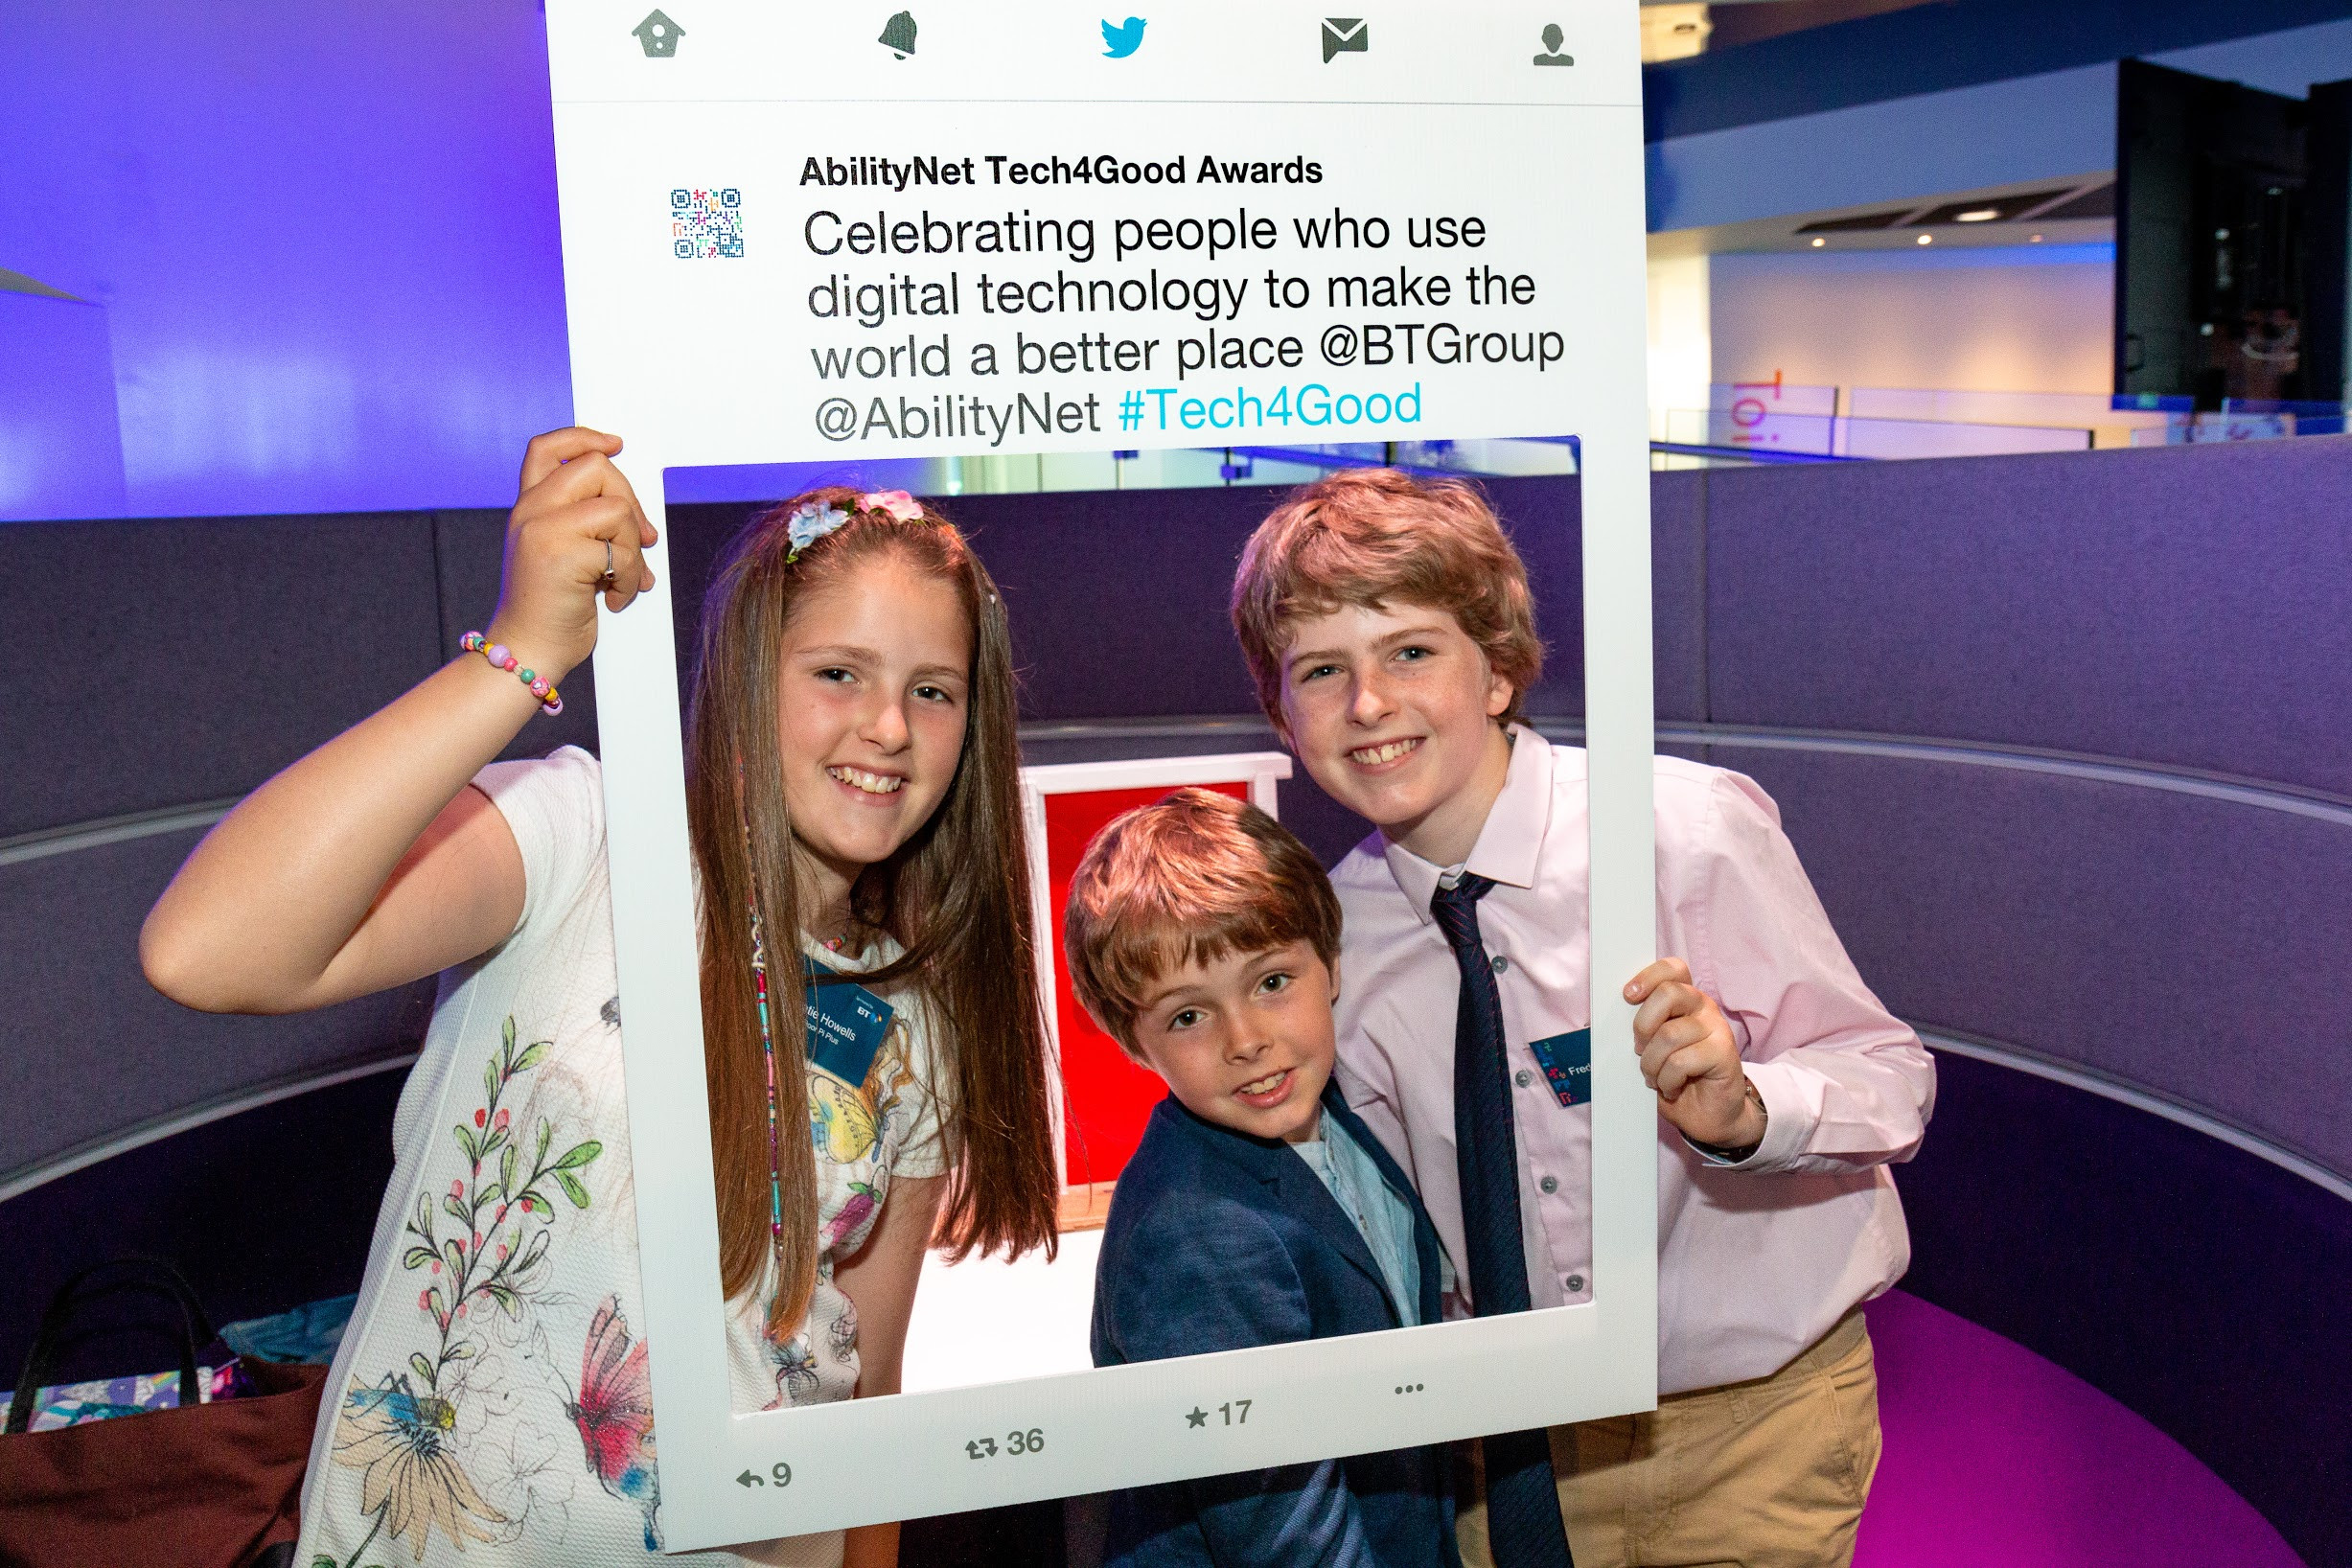 Freddie Howells and siblings wishing a 'selfie' frame at the Tech4Good Awards